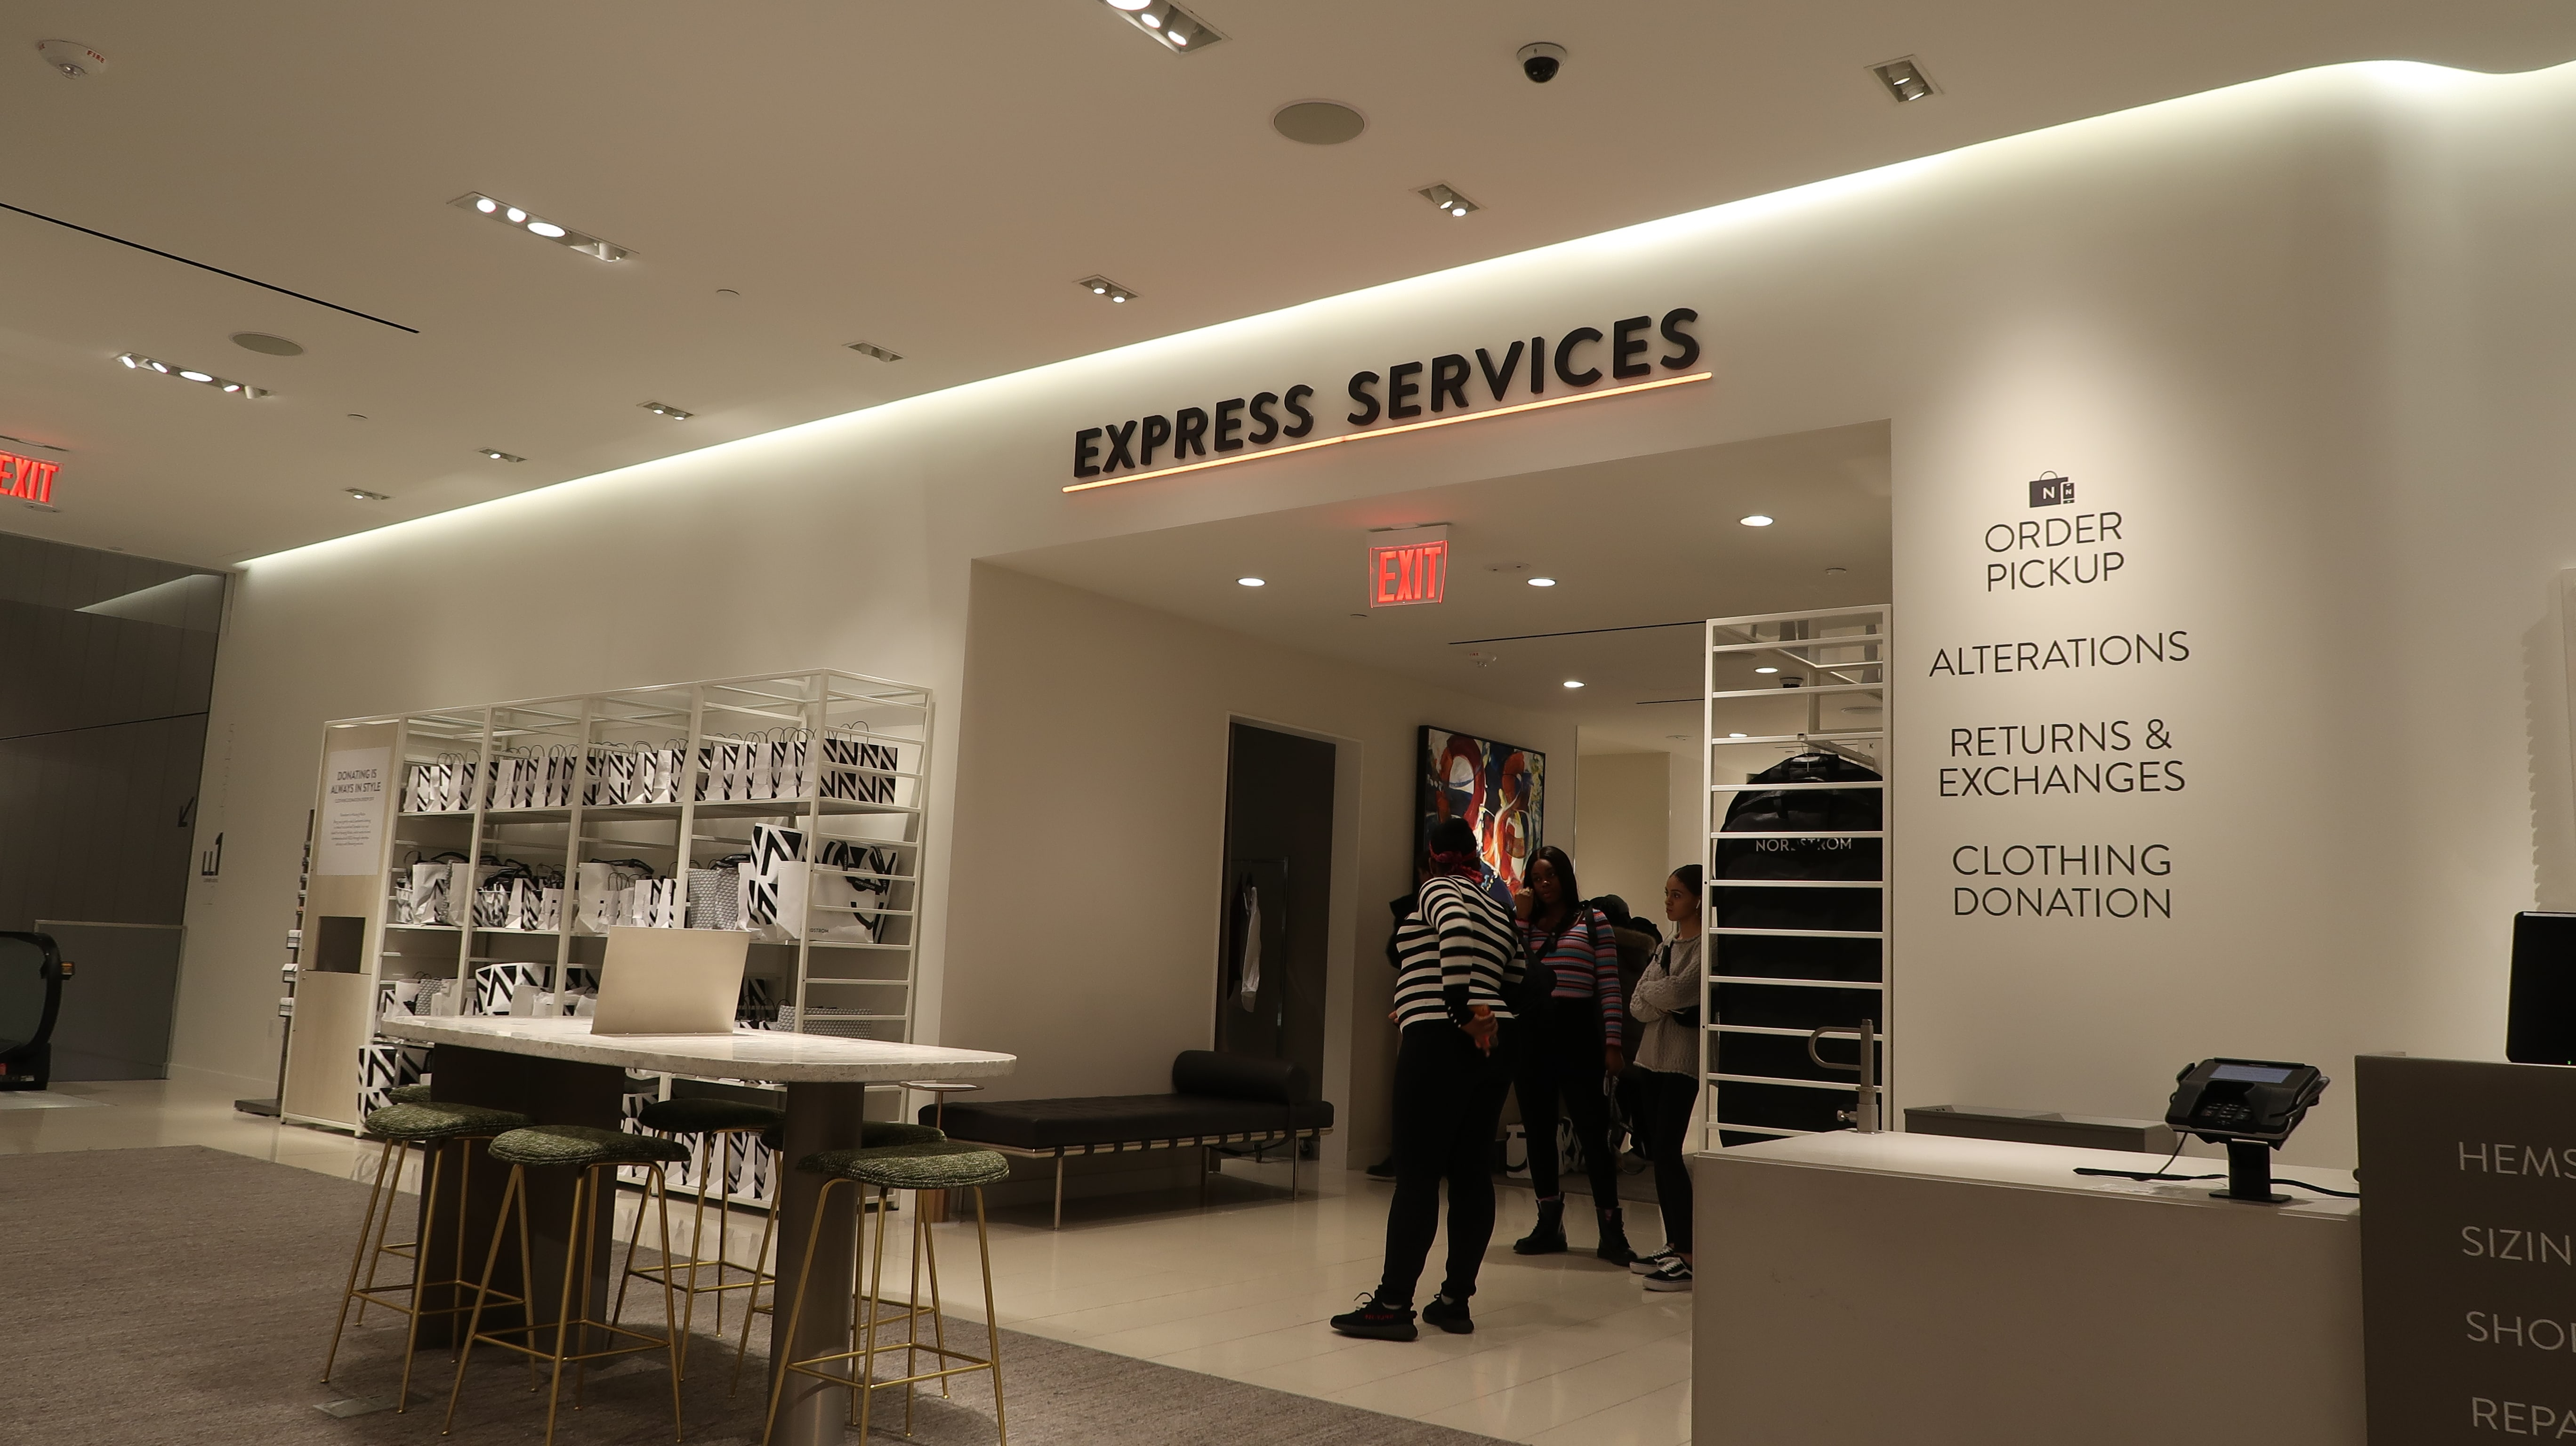 Nordstrom Express Services